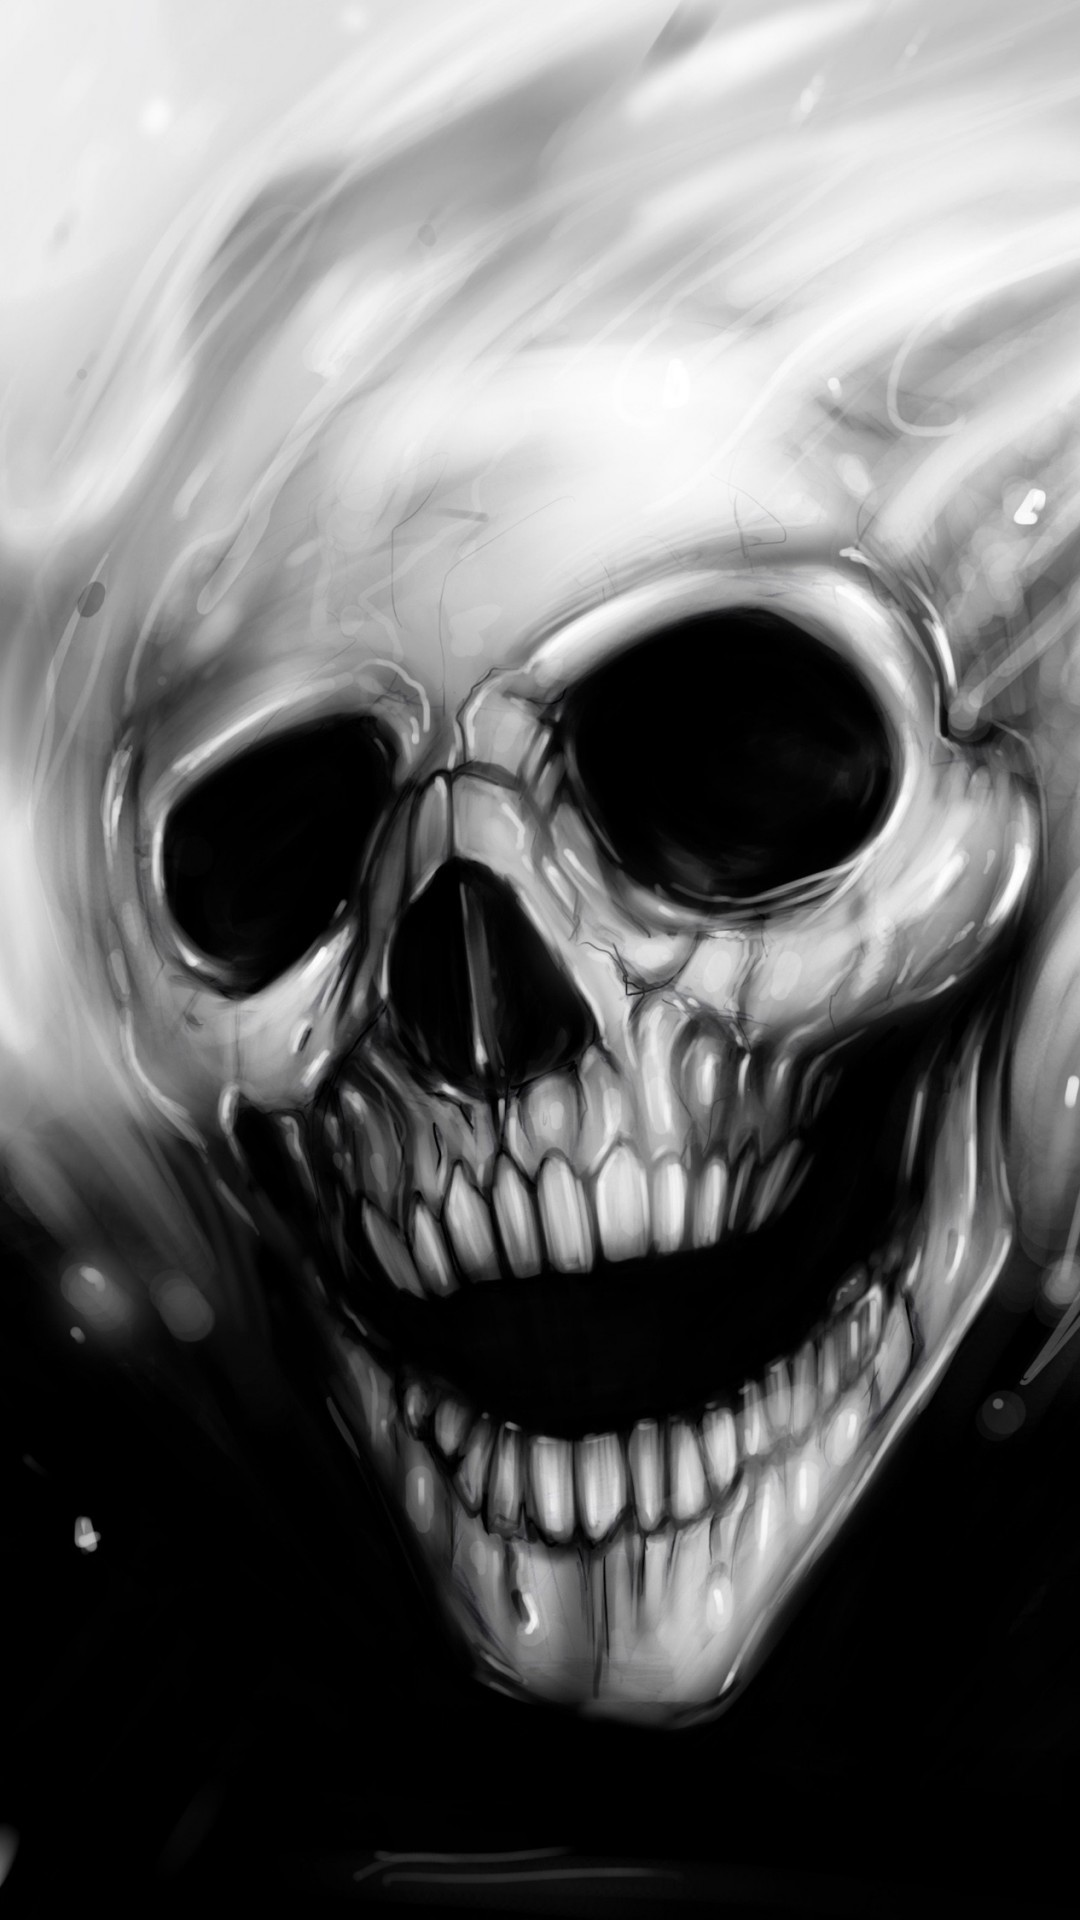 Scary wallpaper for iphone 56 images - Scary skull backgrounds ...